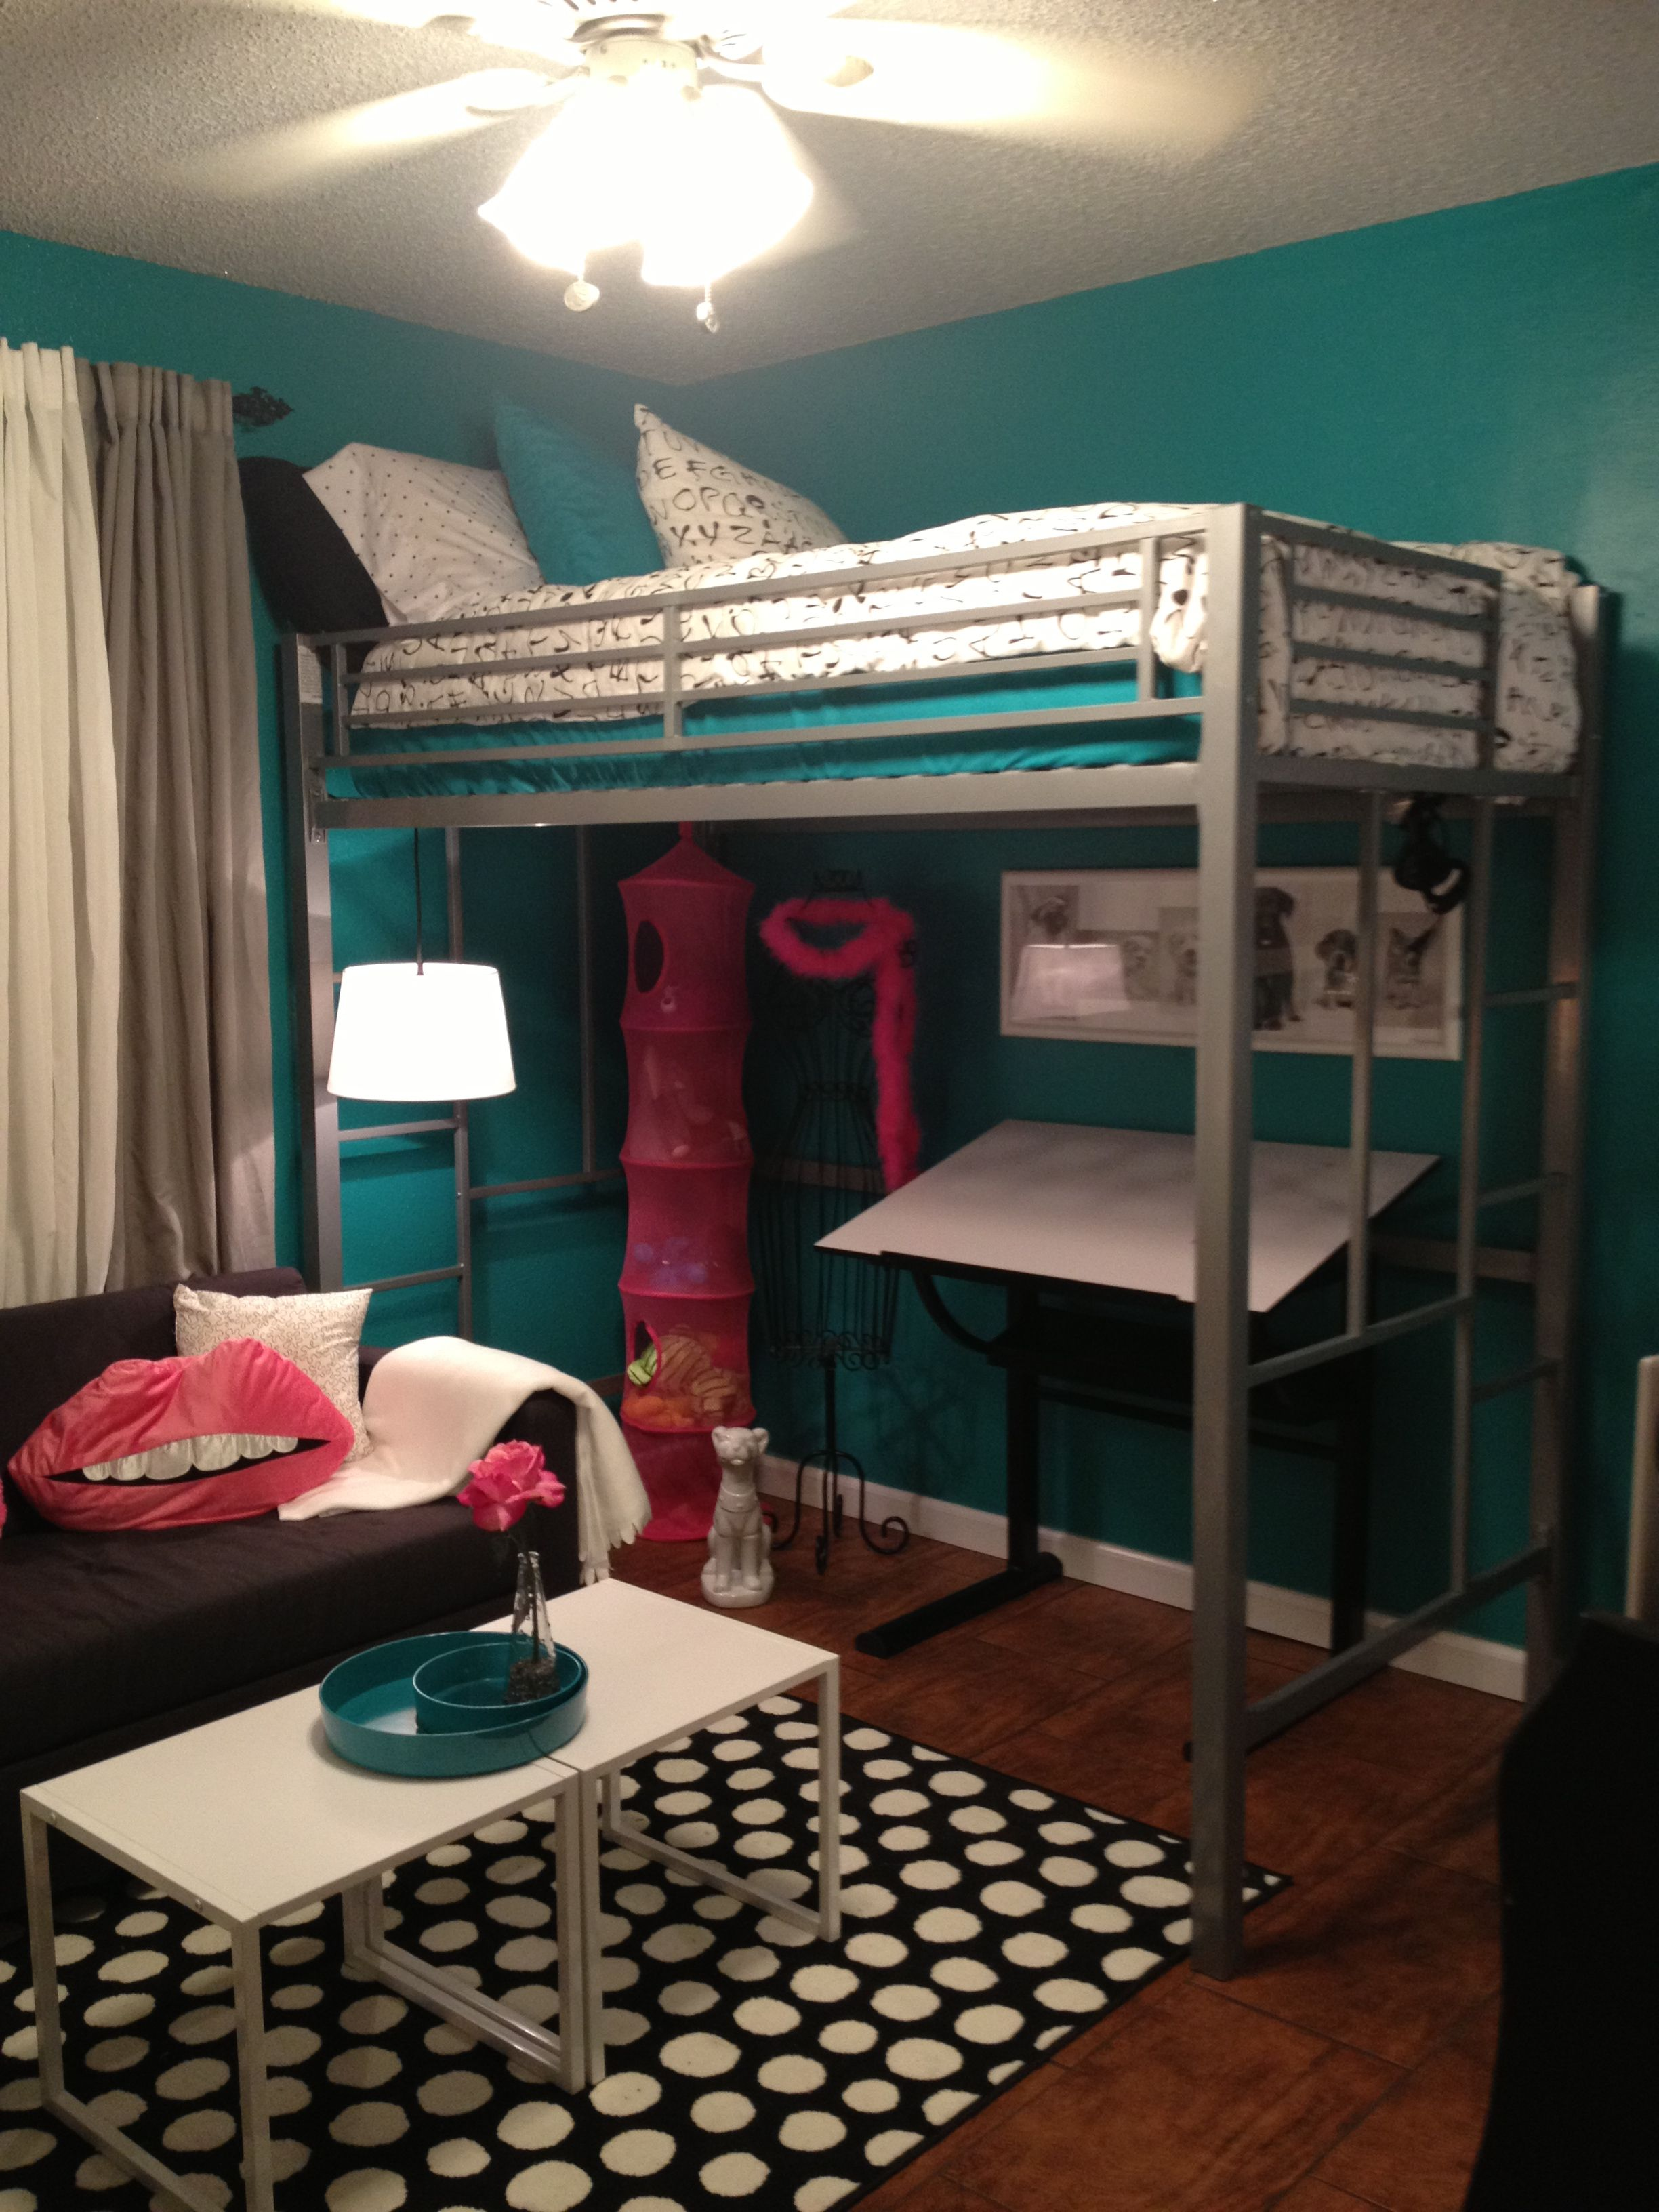 Teen room tween room bedroom idea loft bed black and for Room decor ideas teenage girl